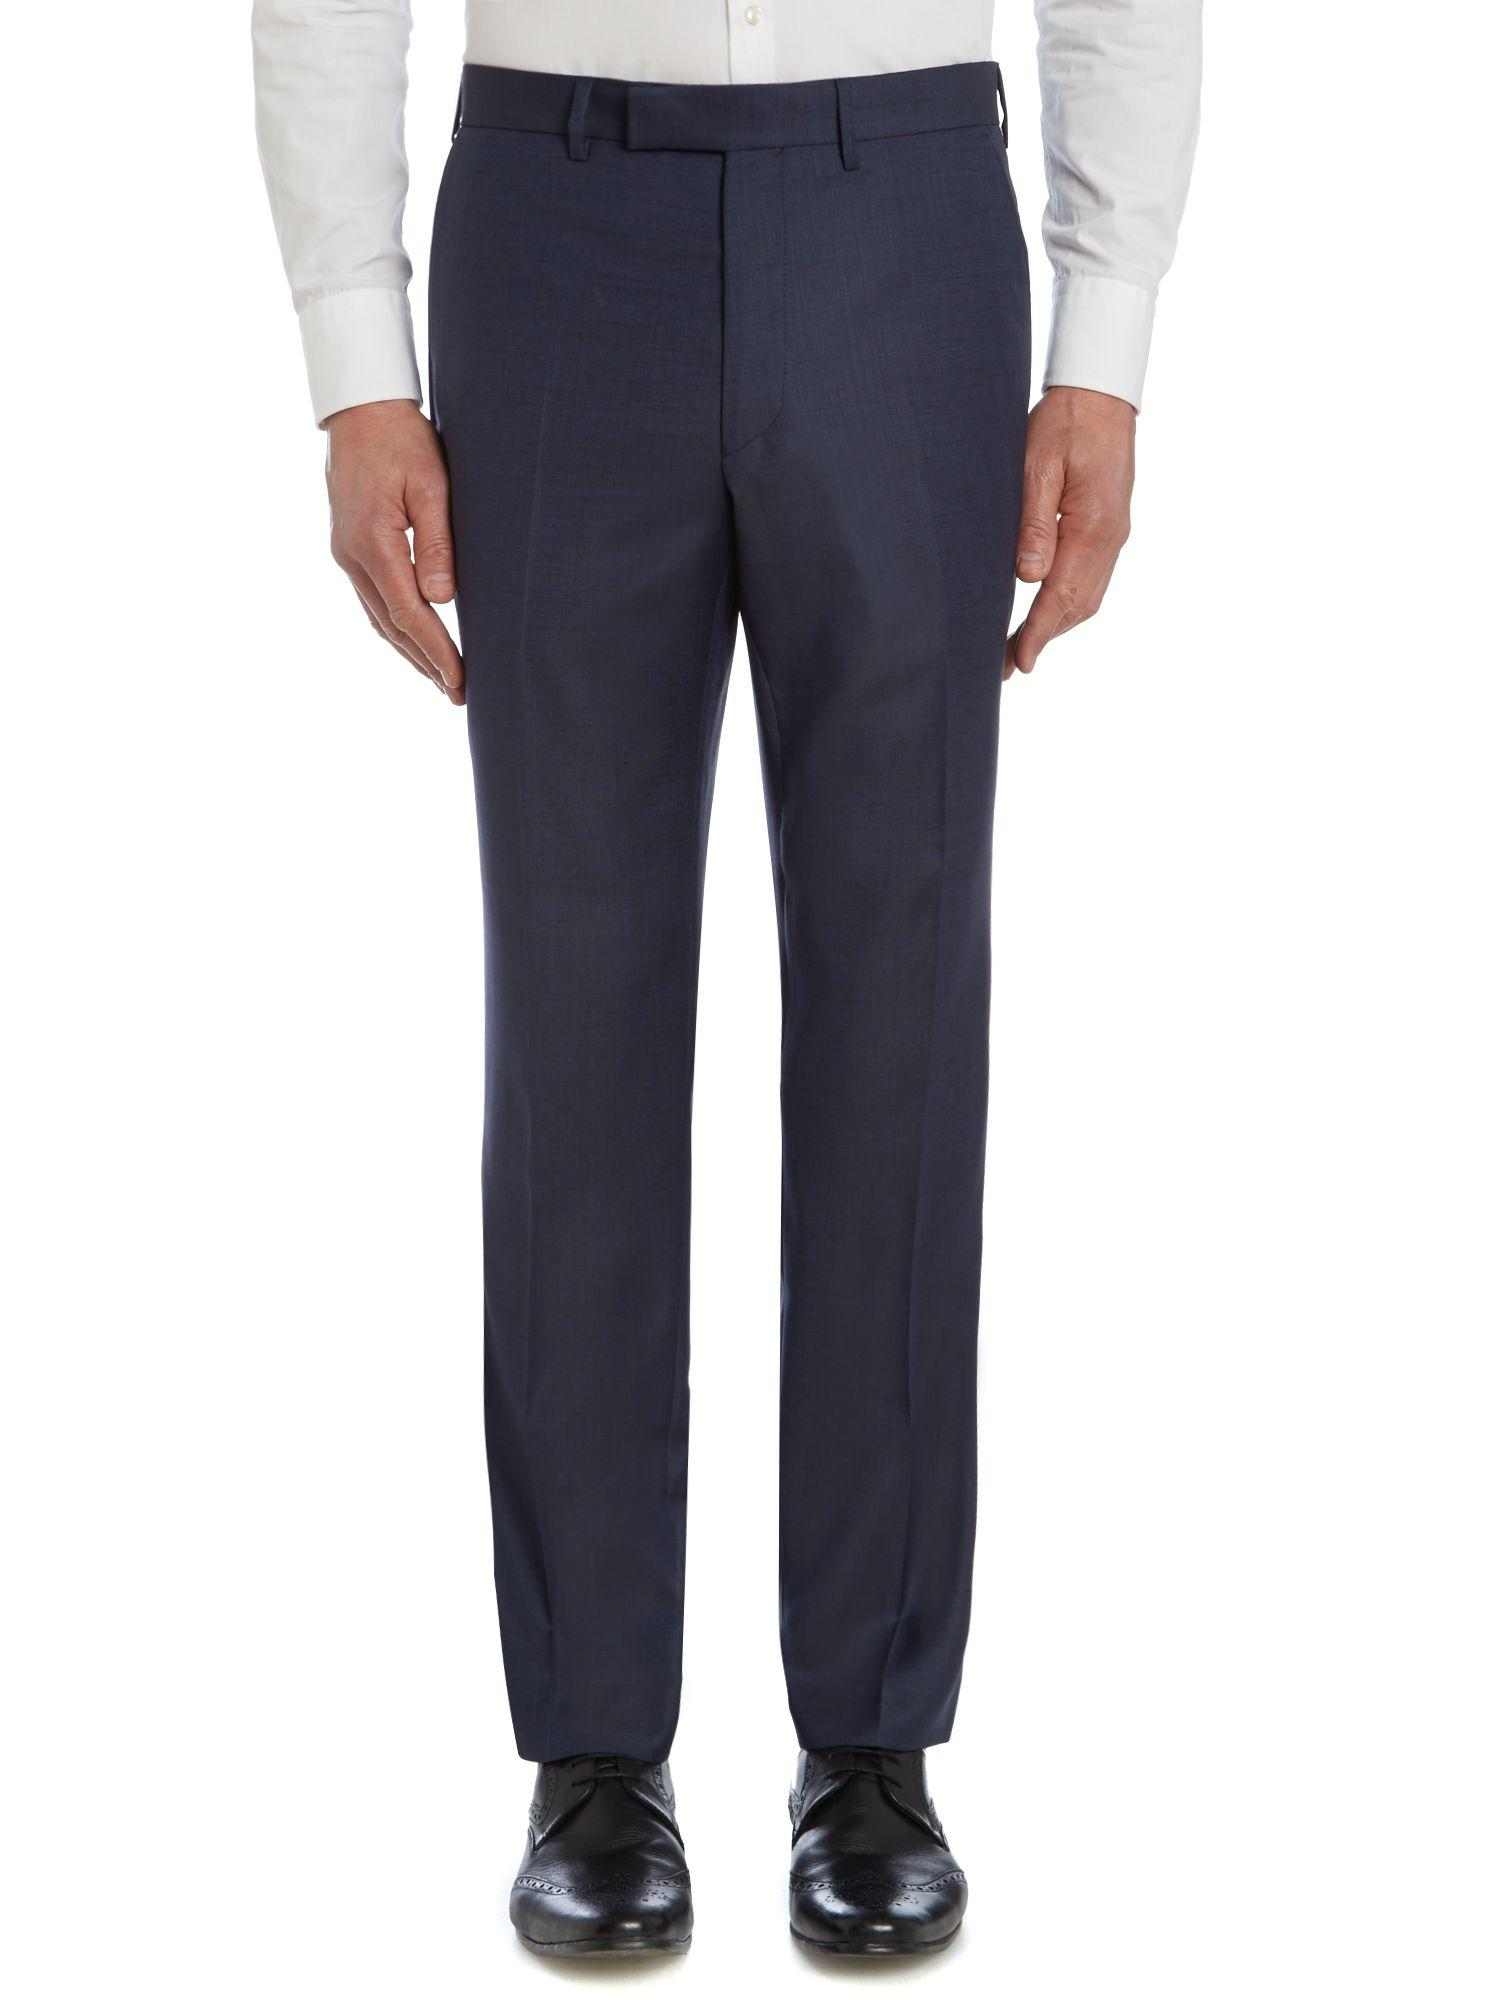 Simon Carter Wool Twill Regular Fit Suit Trousers in Navy (Blue) for Men